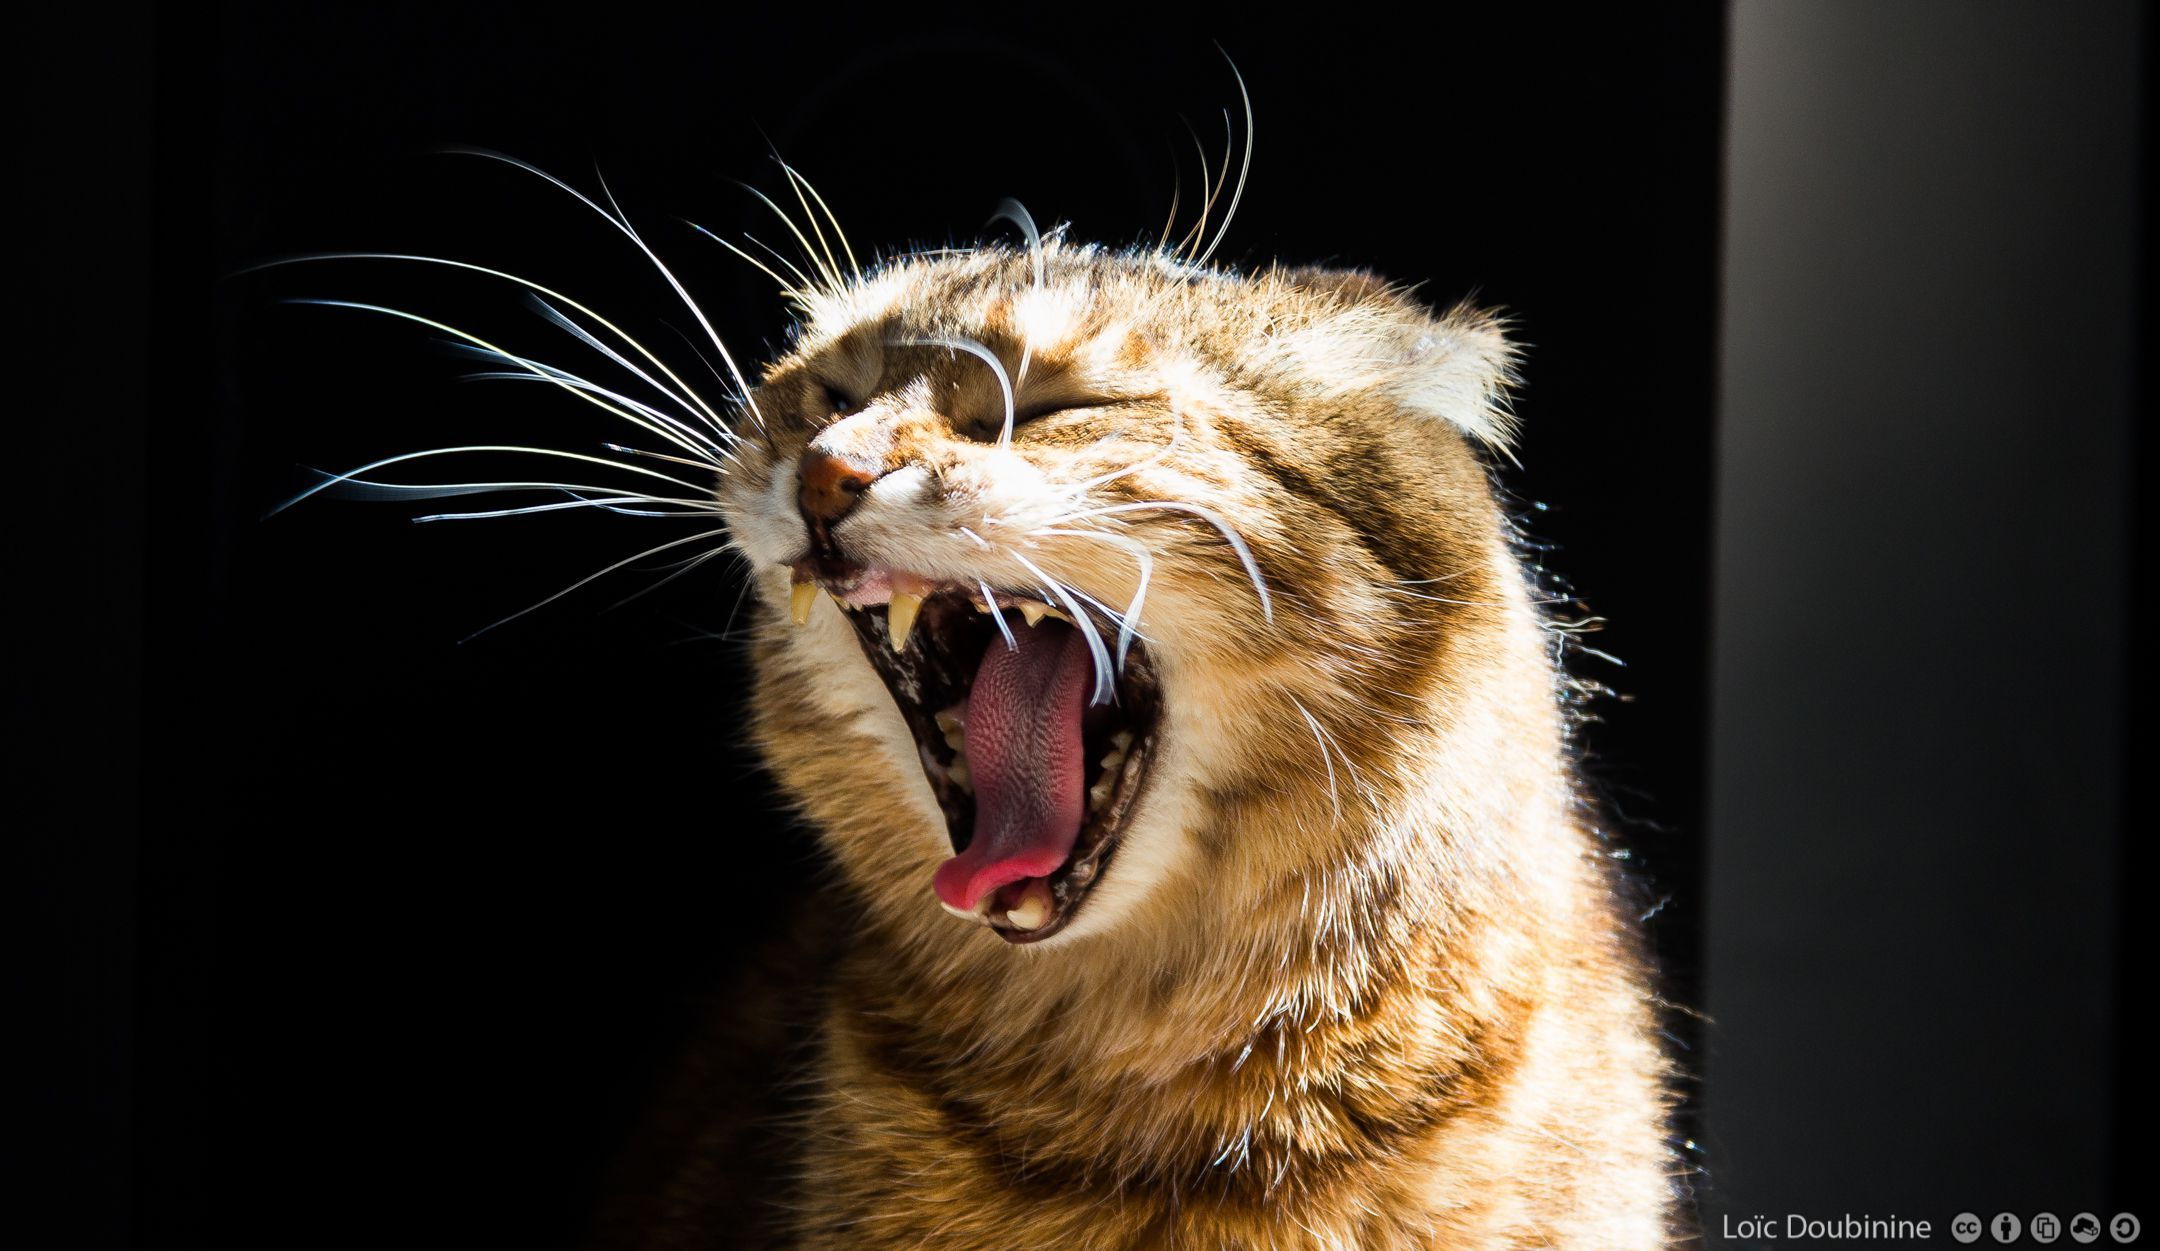 Cats Wallpapers speckled Cat Attacking Best Wallpaper